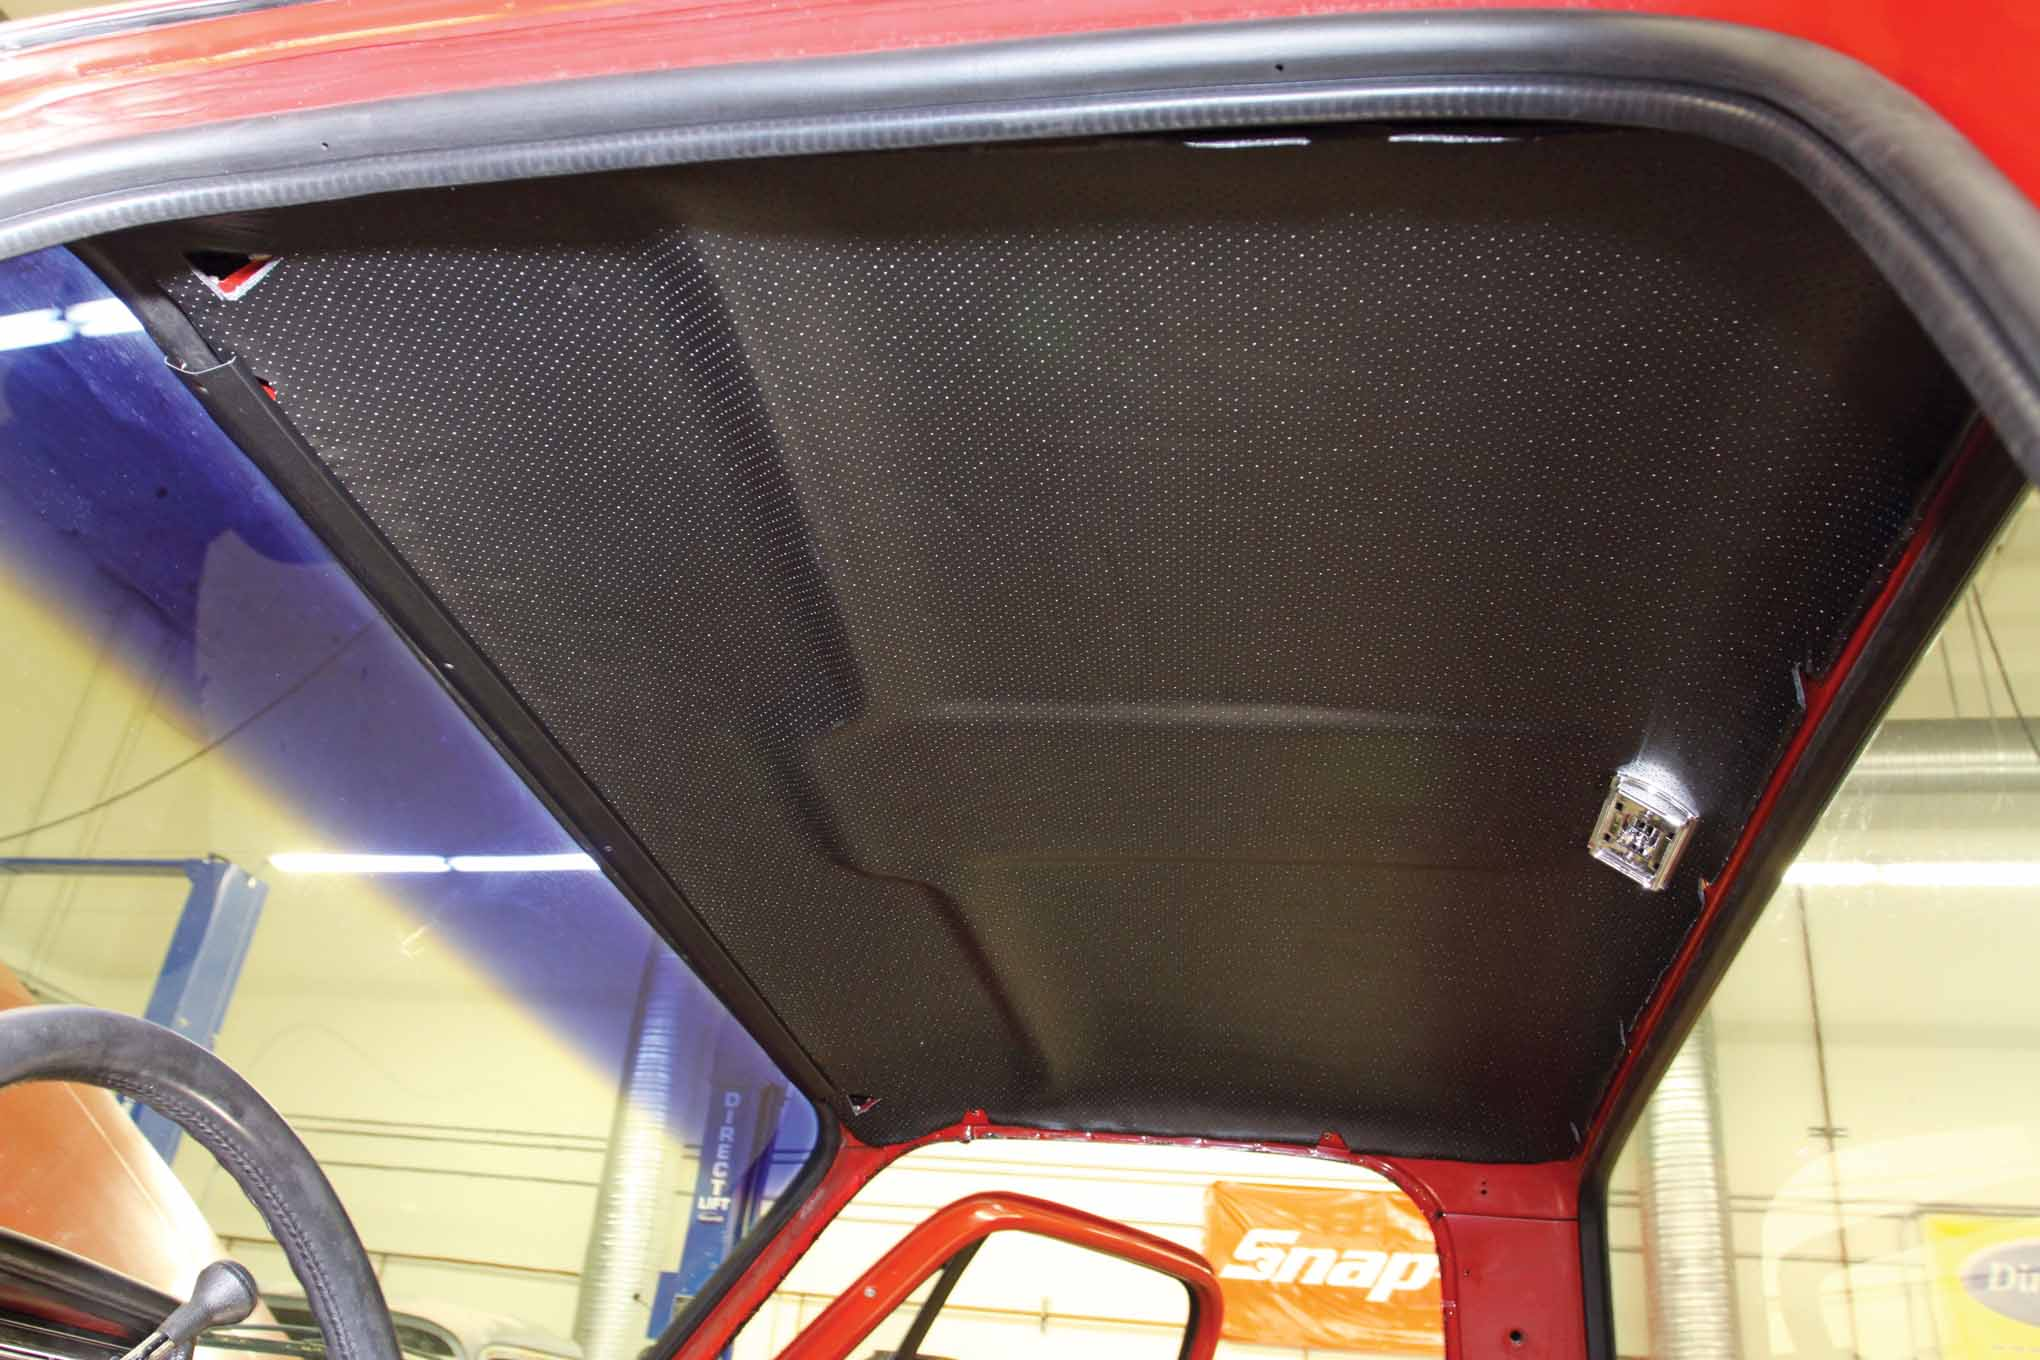 With the help of a second person, the front and rear center interior cab moldings were installed to hold the new headliner in place.